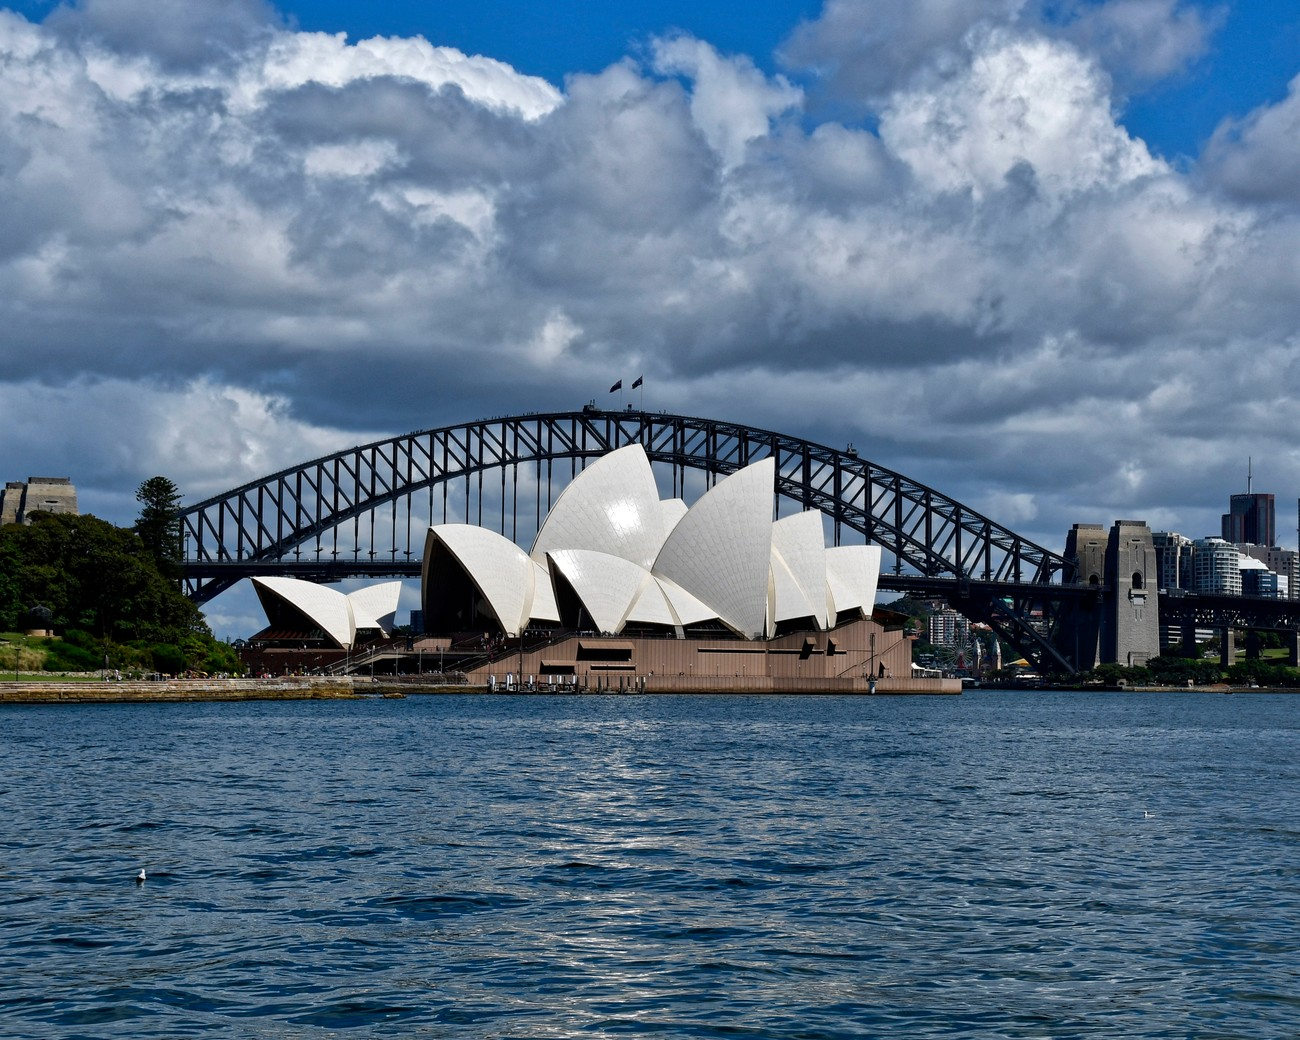 No visit to Sydney is complete unless there is a photo of the Opera House and the Sydney Harbor Bridge.  Here are both together, taken from another iconic site-The Royal Botanical Gardens.